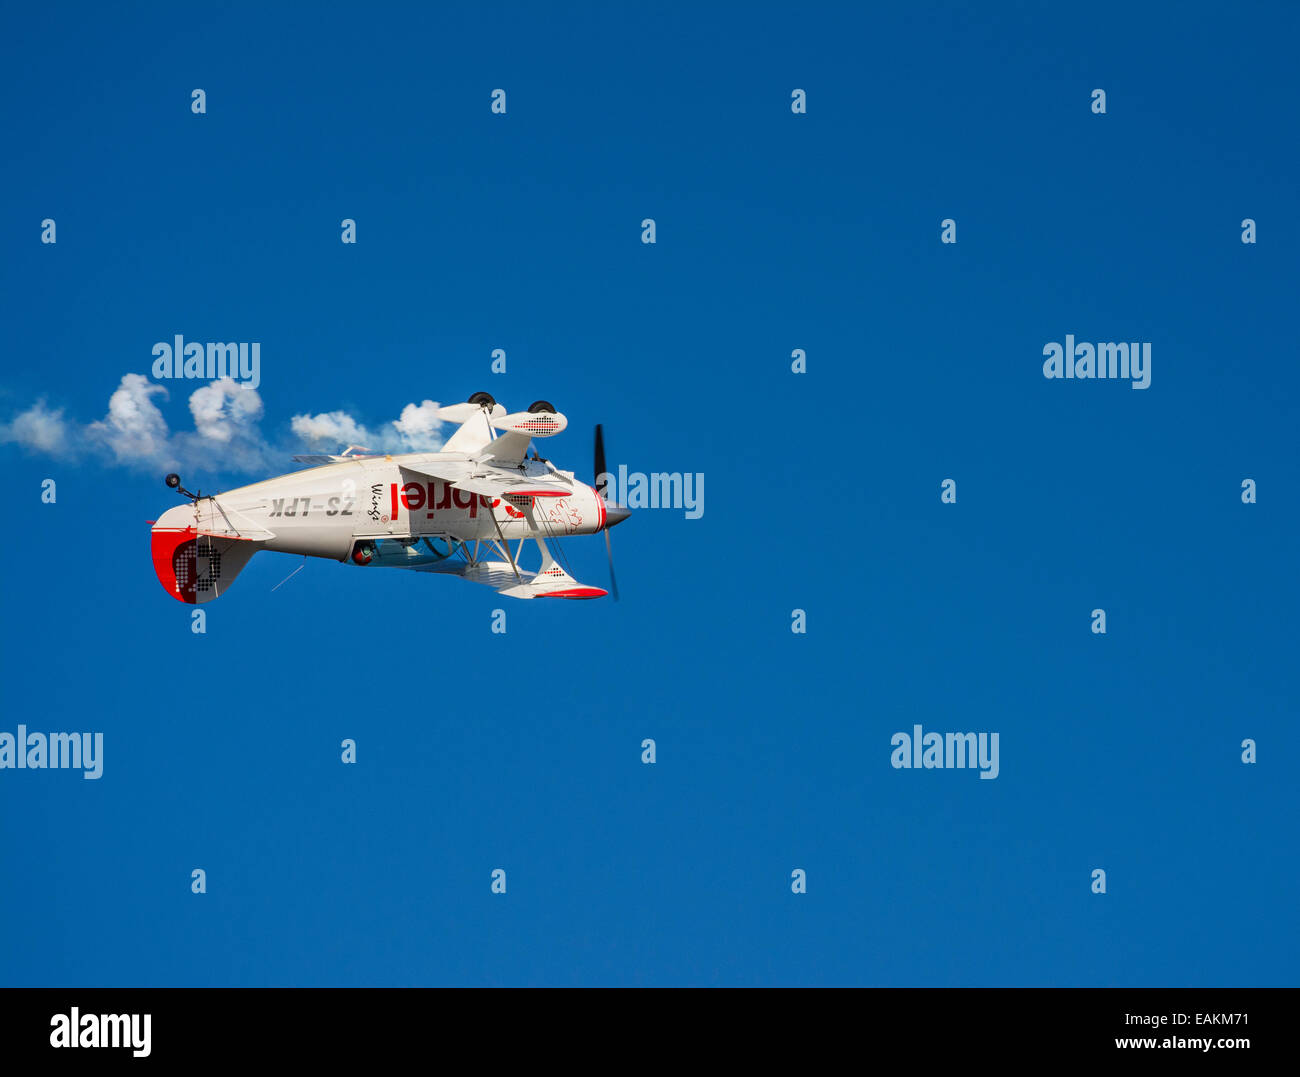 An aerobatics aircraft flying upside down at the Lowveld Air Show - Stock Image